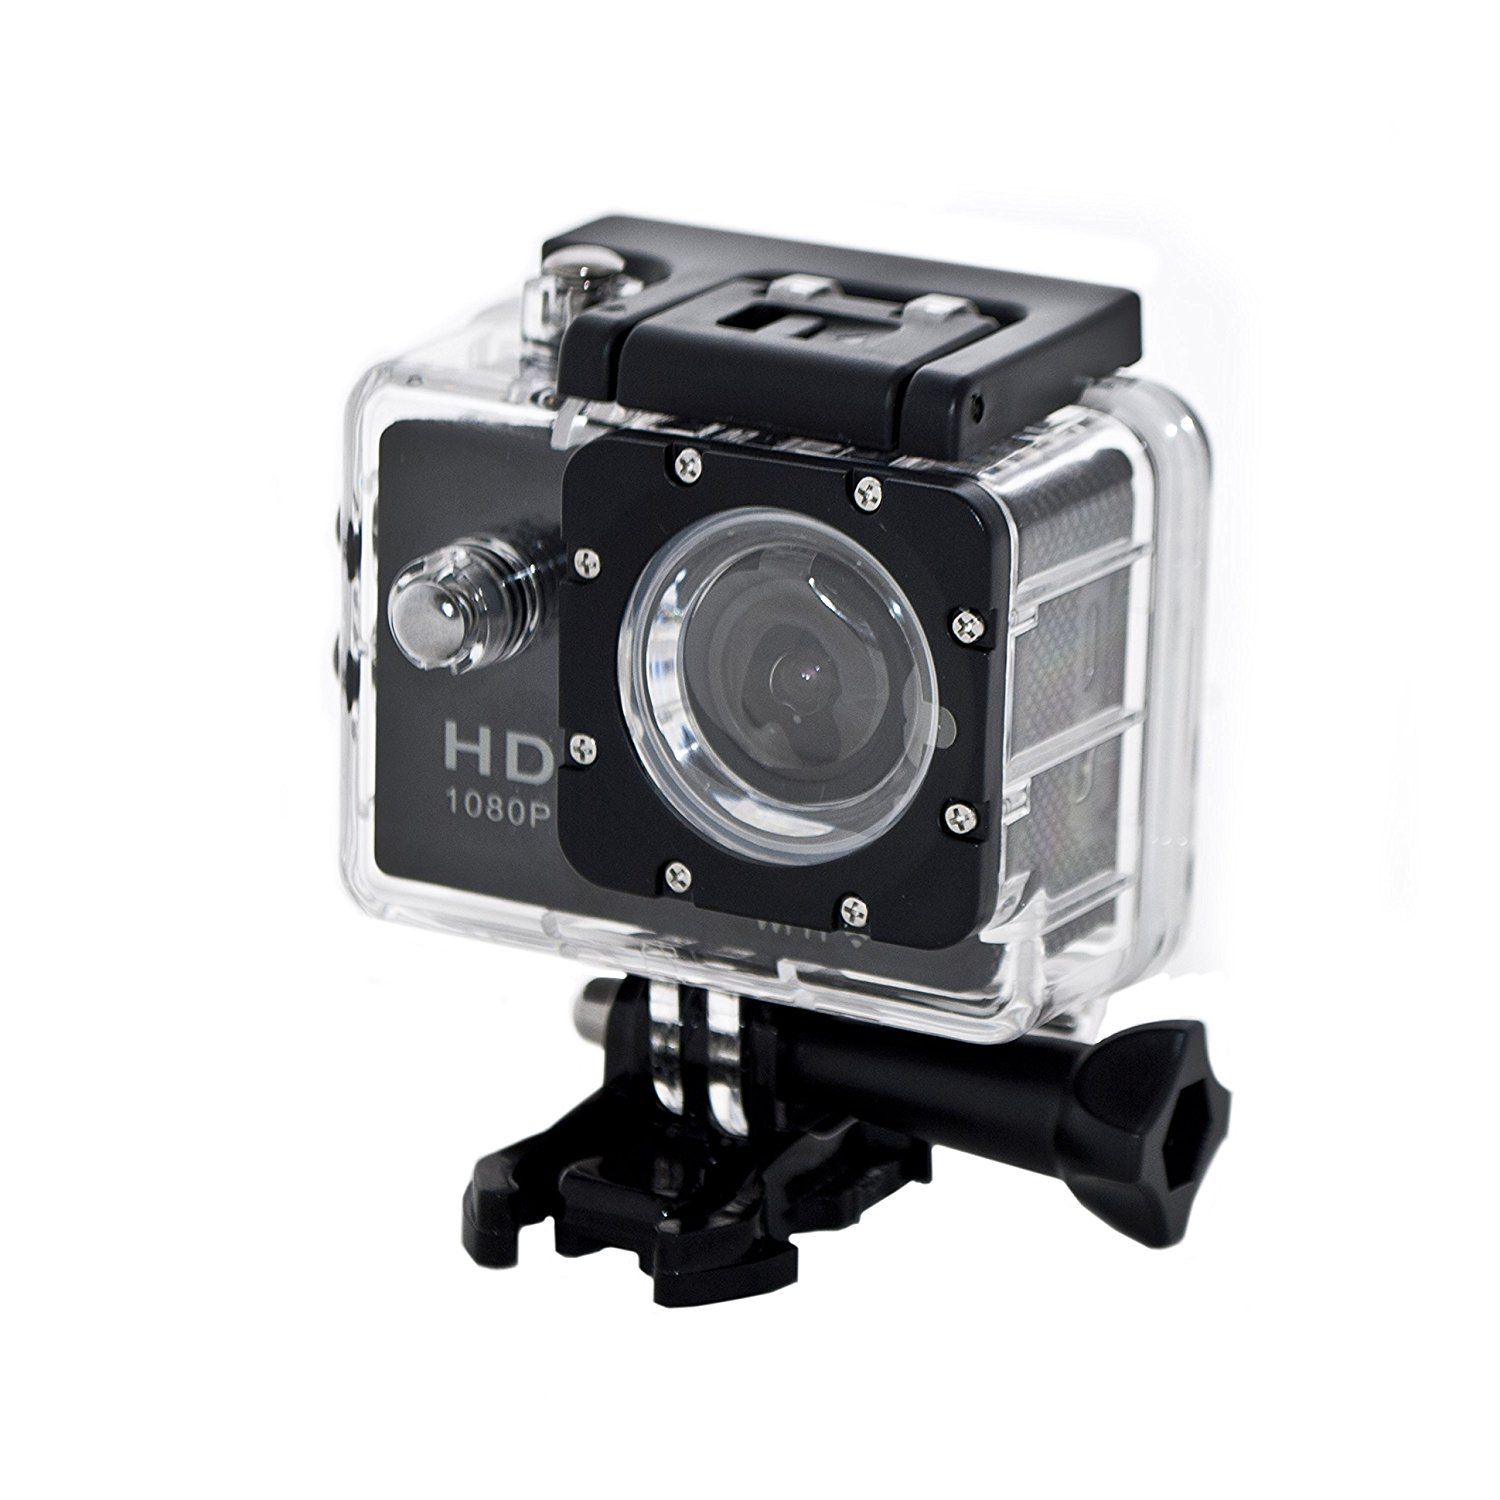 ASPC001 2.0-Inch WiFi HD 1080P 12MP Sports Waterproof Digital Camera